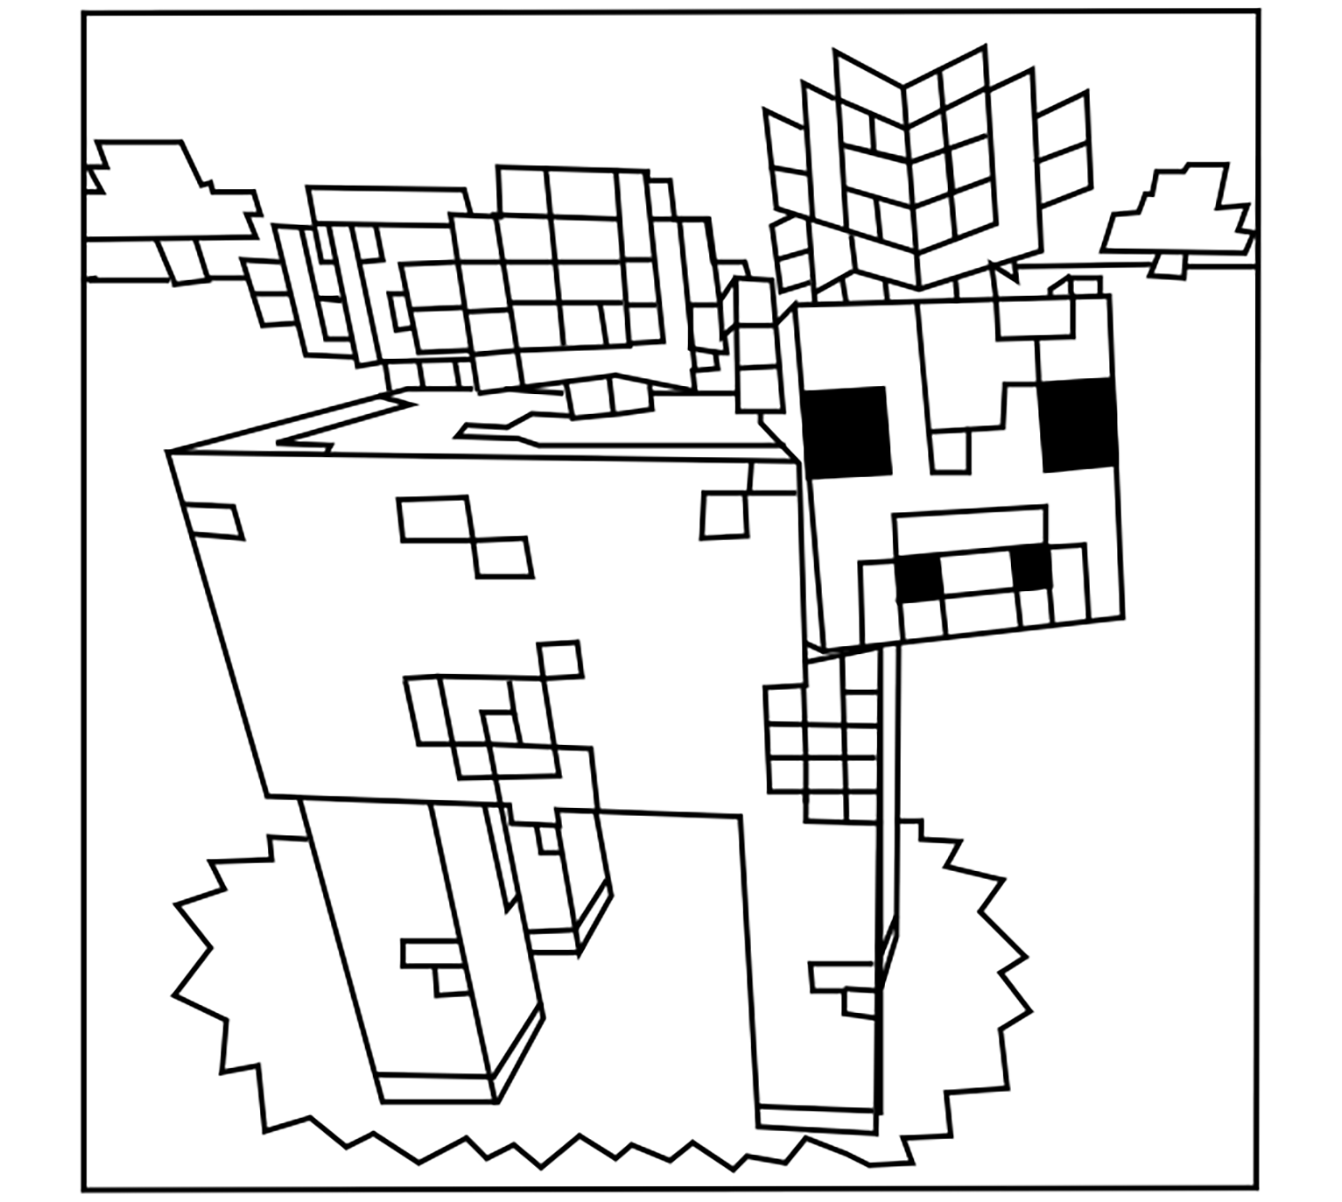 images of minecraft coloring pages minecraft coloring pages birthday printable pages coloring minecraft of images